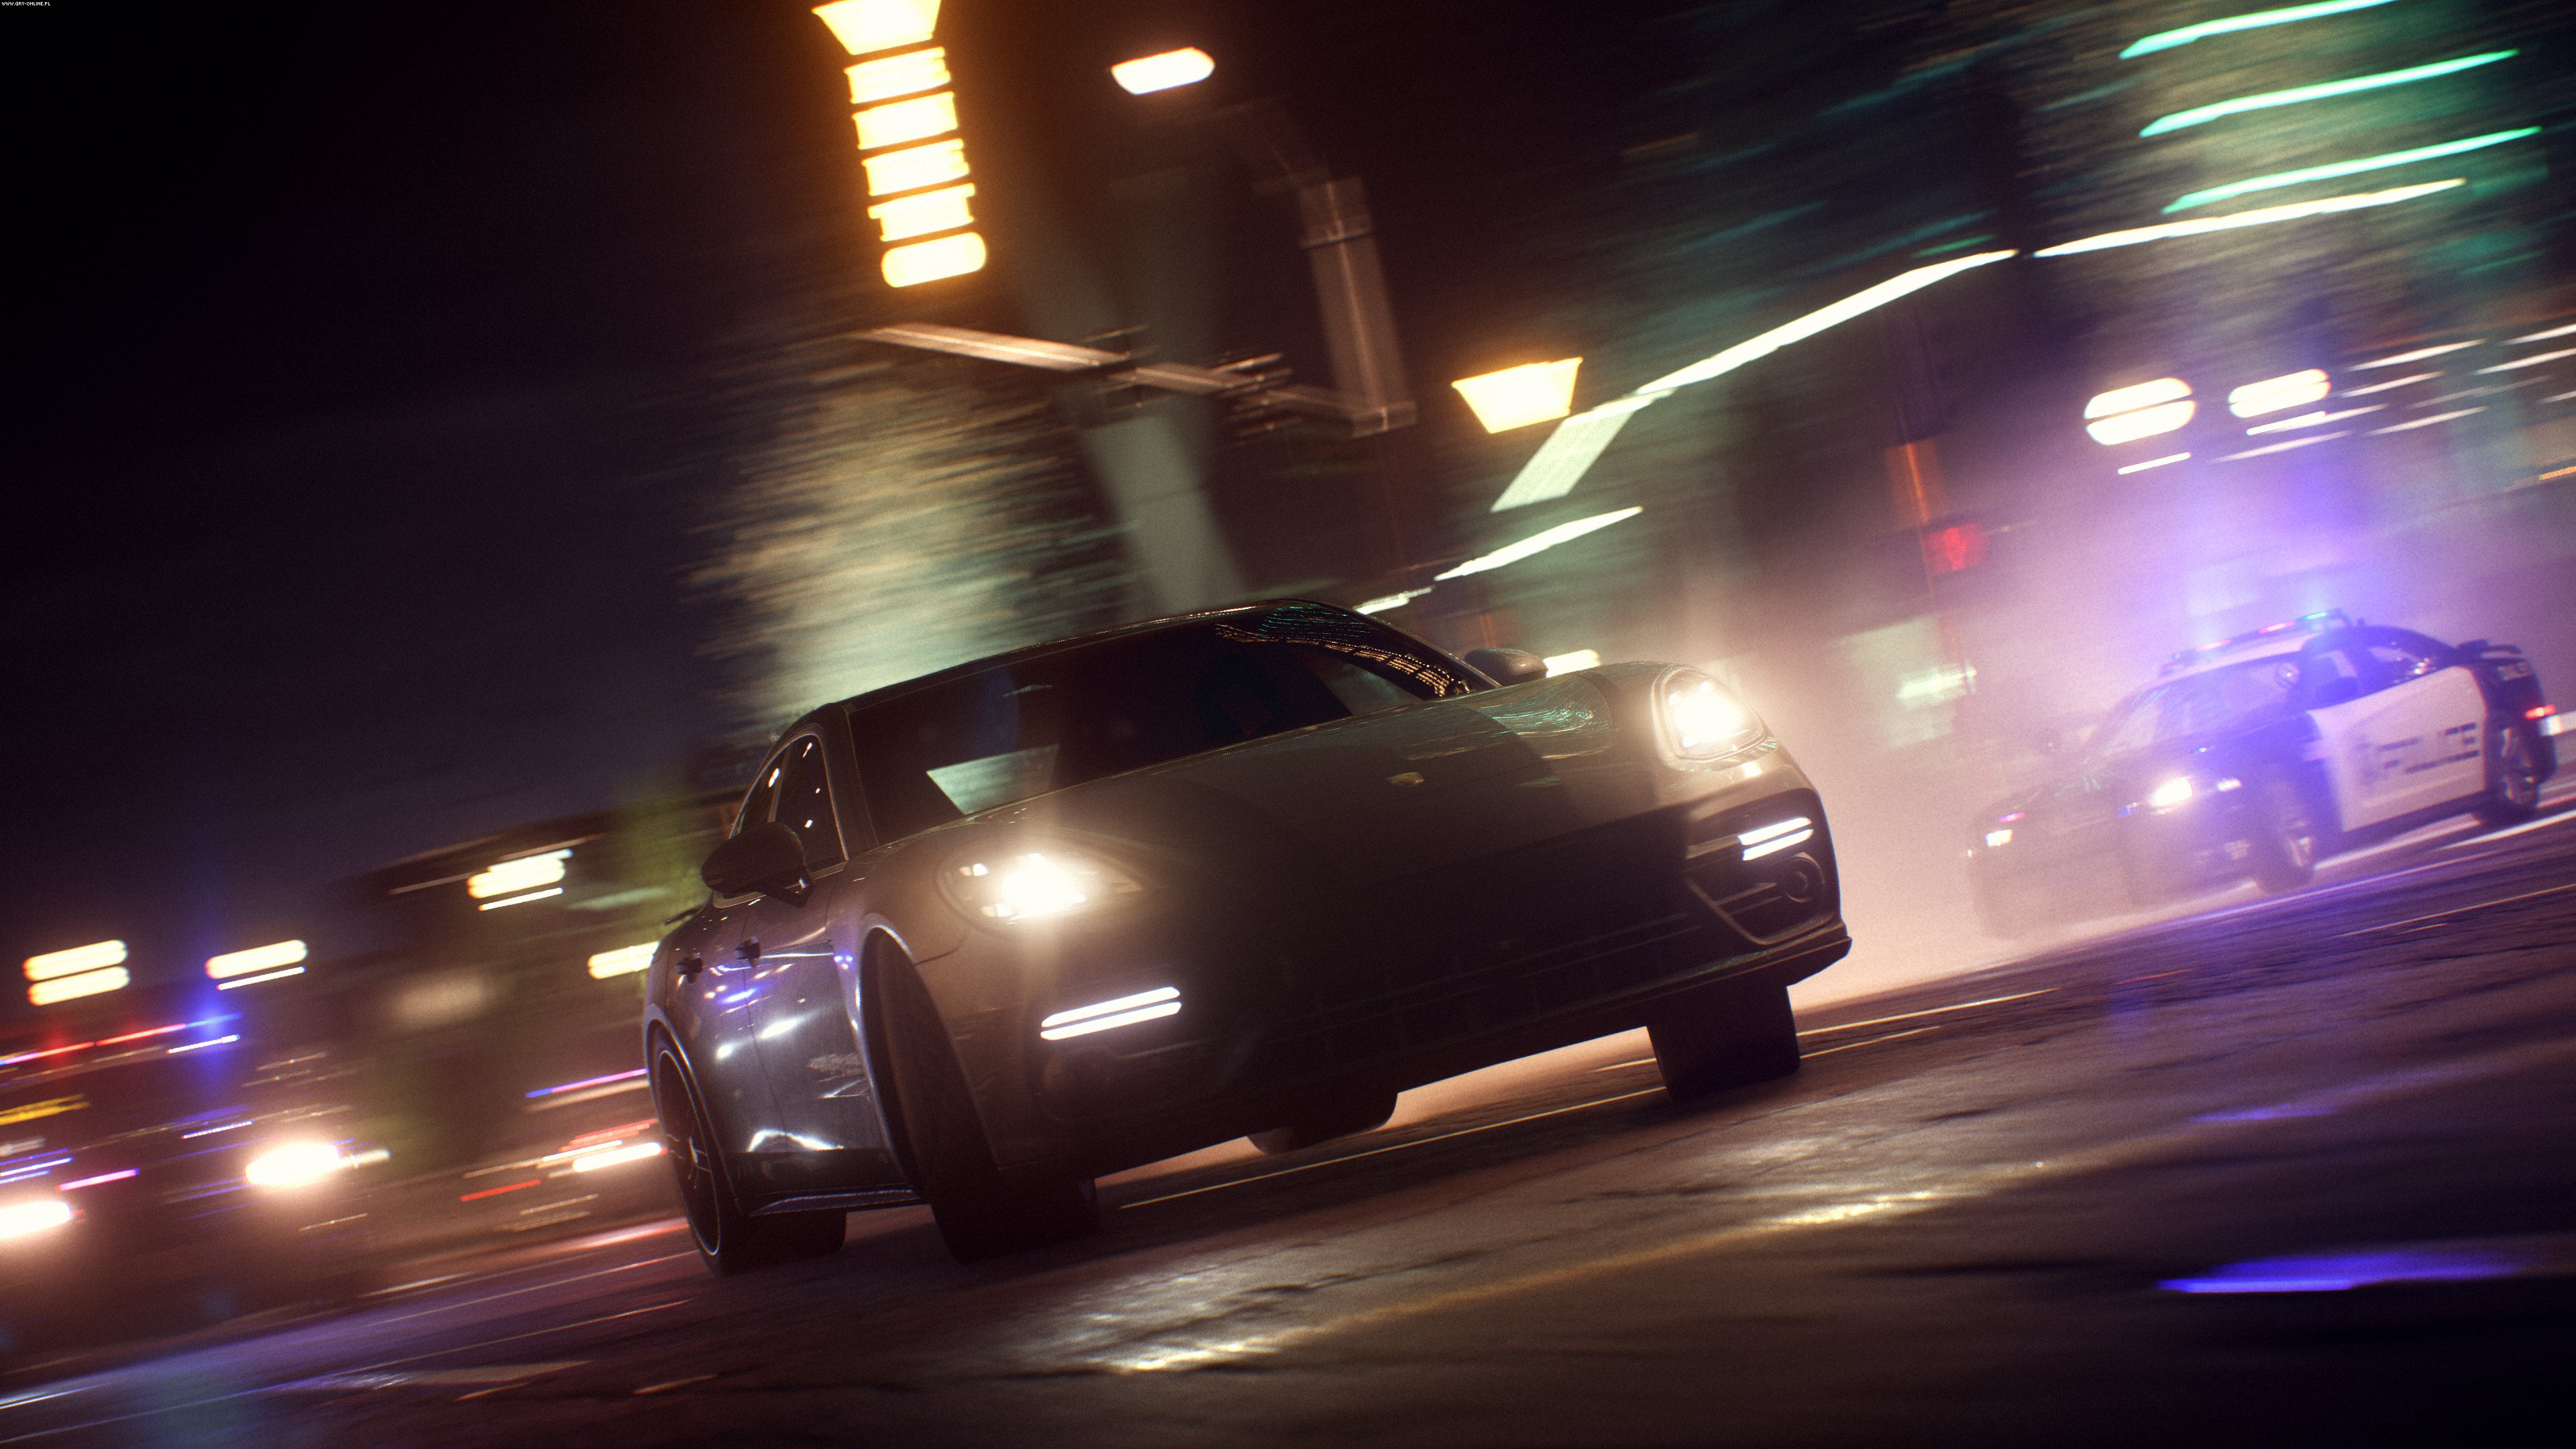 Need for Speed: Payback PC, PS4, XONE Games Image 10/11, Ghost Games, Electronic Arts Inc.